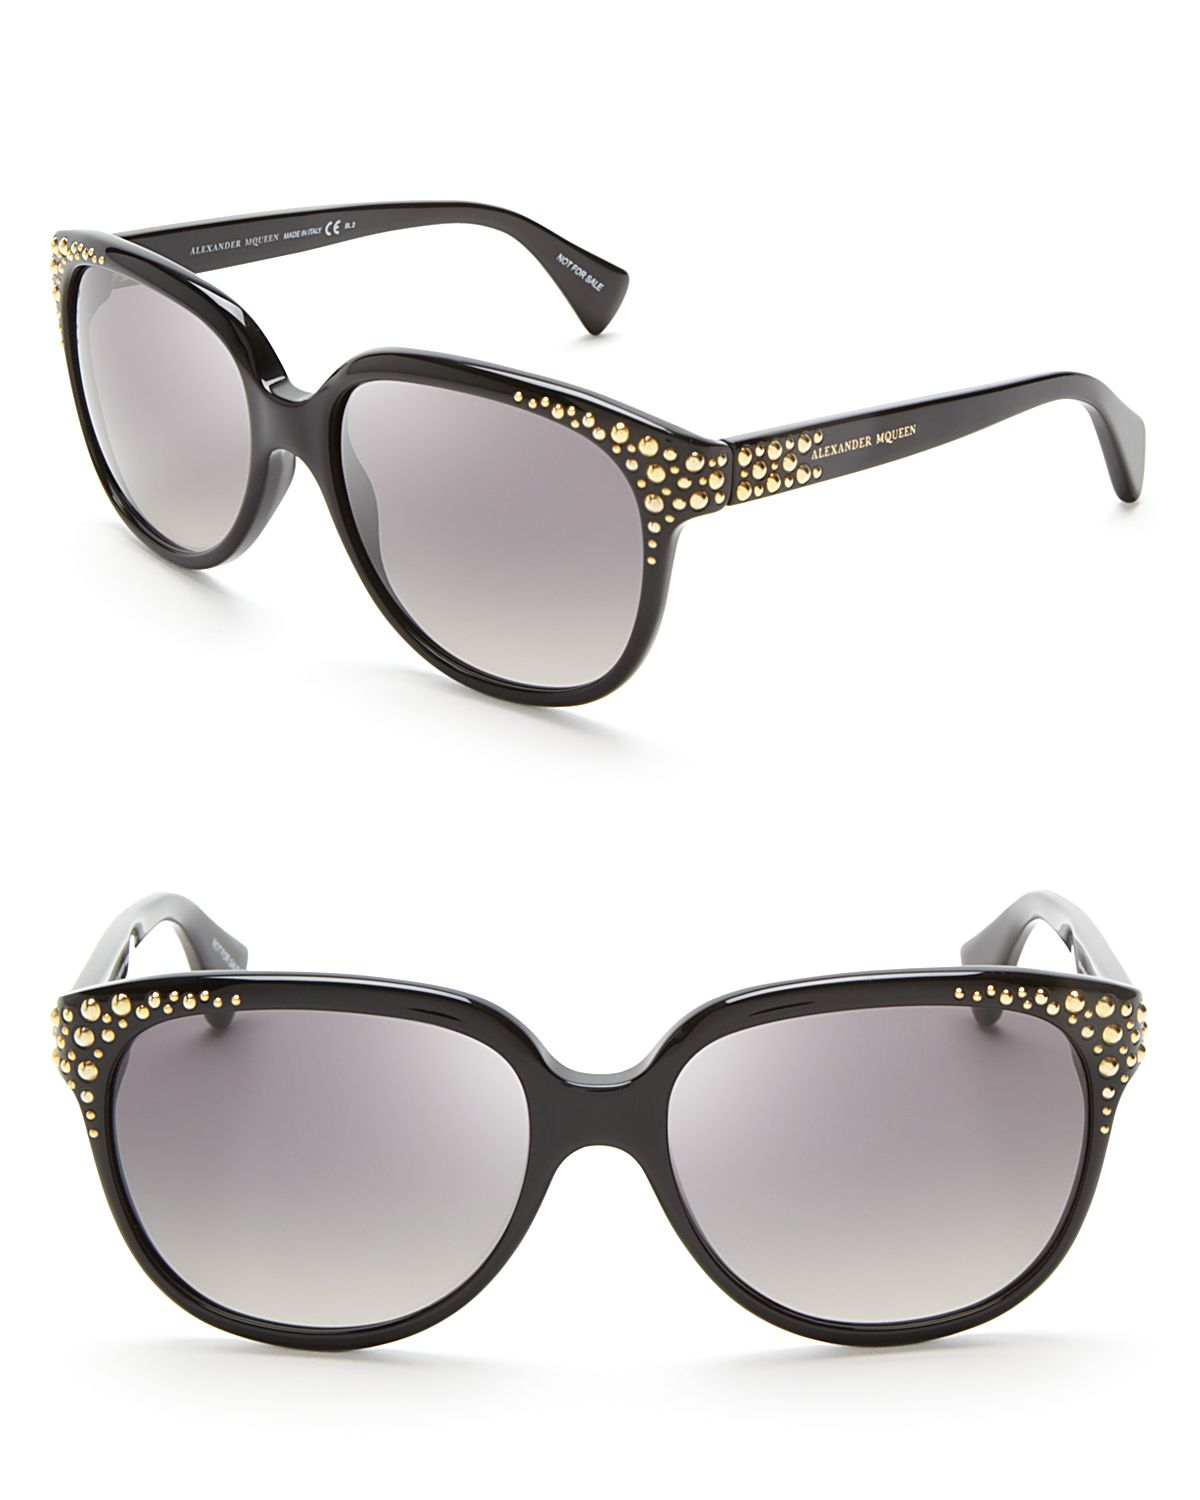 Alexander Mcqueen Cateye Sunglasses  alexander mcqueen studded cat eye sunglasses in black lyst